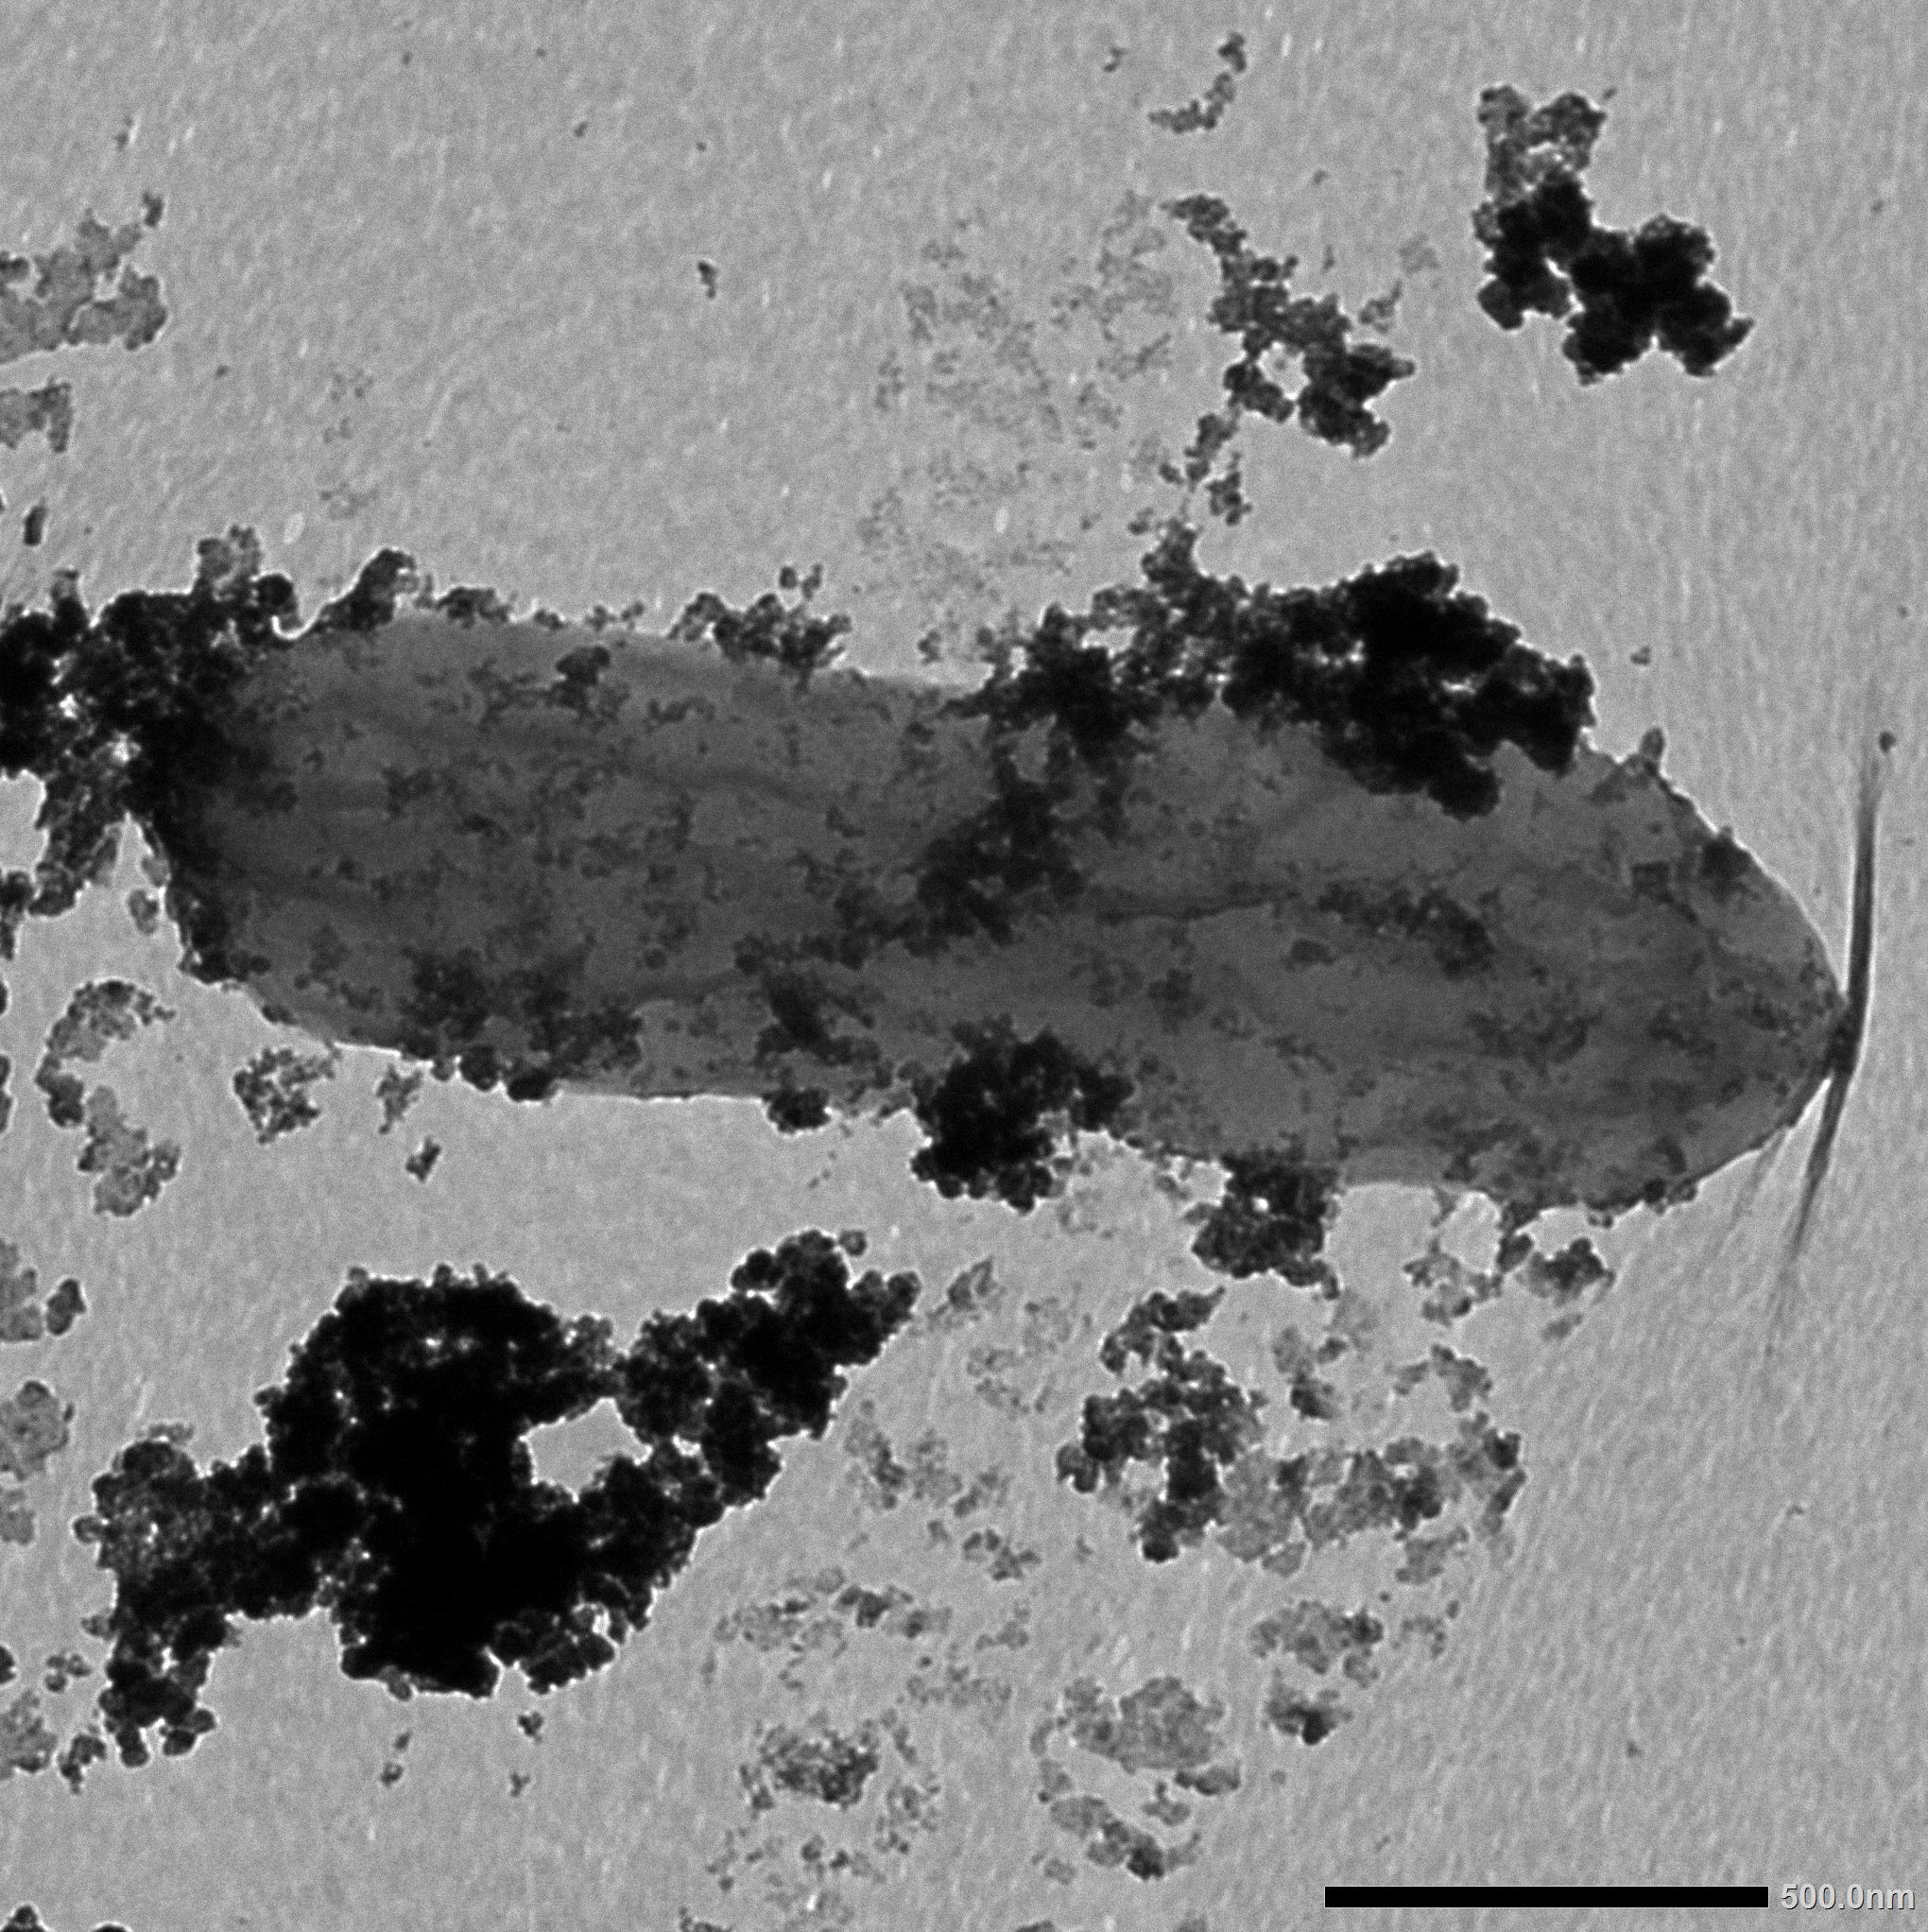 A microscope image shows an oblong, gray bacterial cell coated with clumps of dark speckles, which are mineral particles containing cobalt.